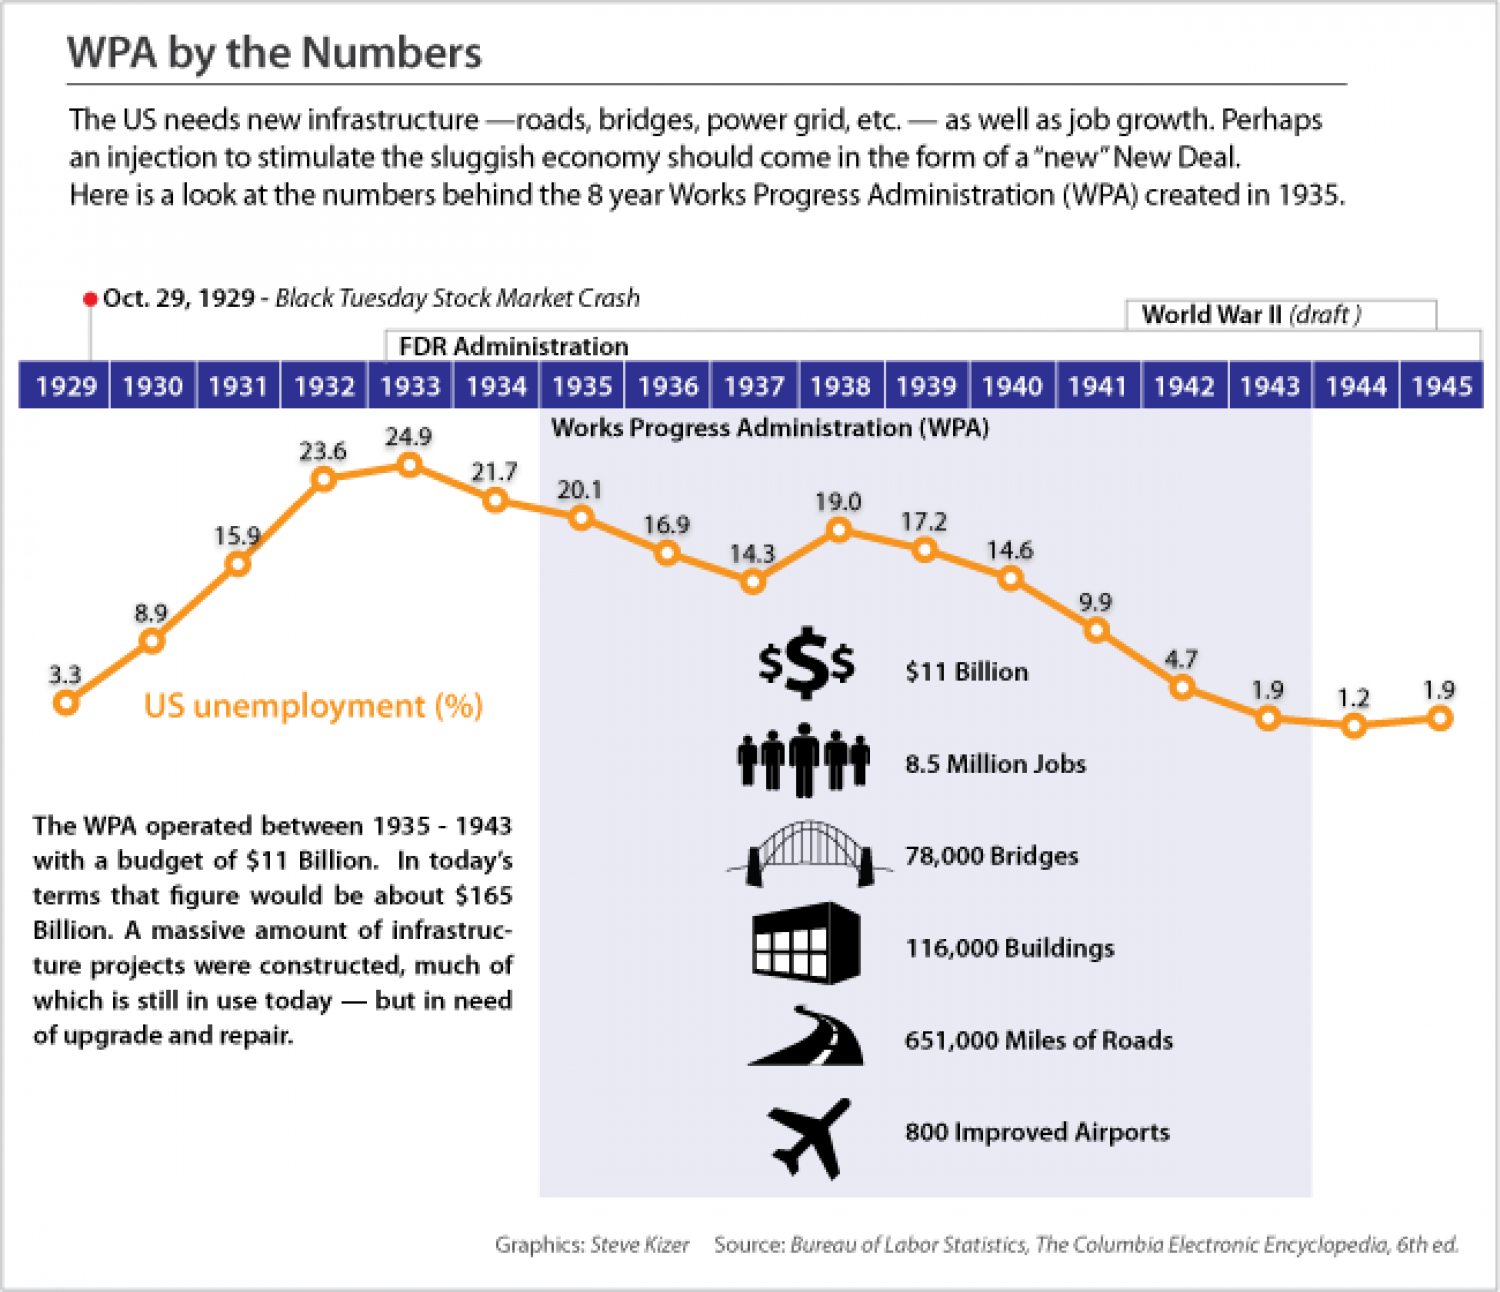 WPA by the Number Infographic